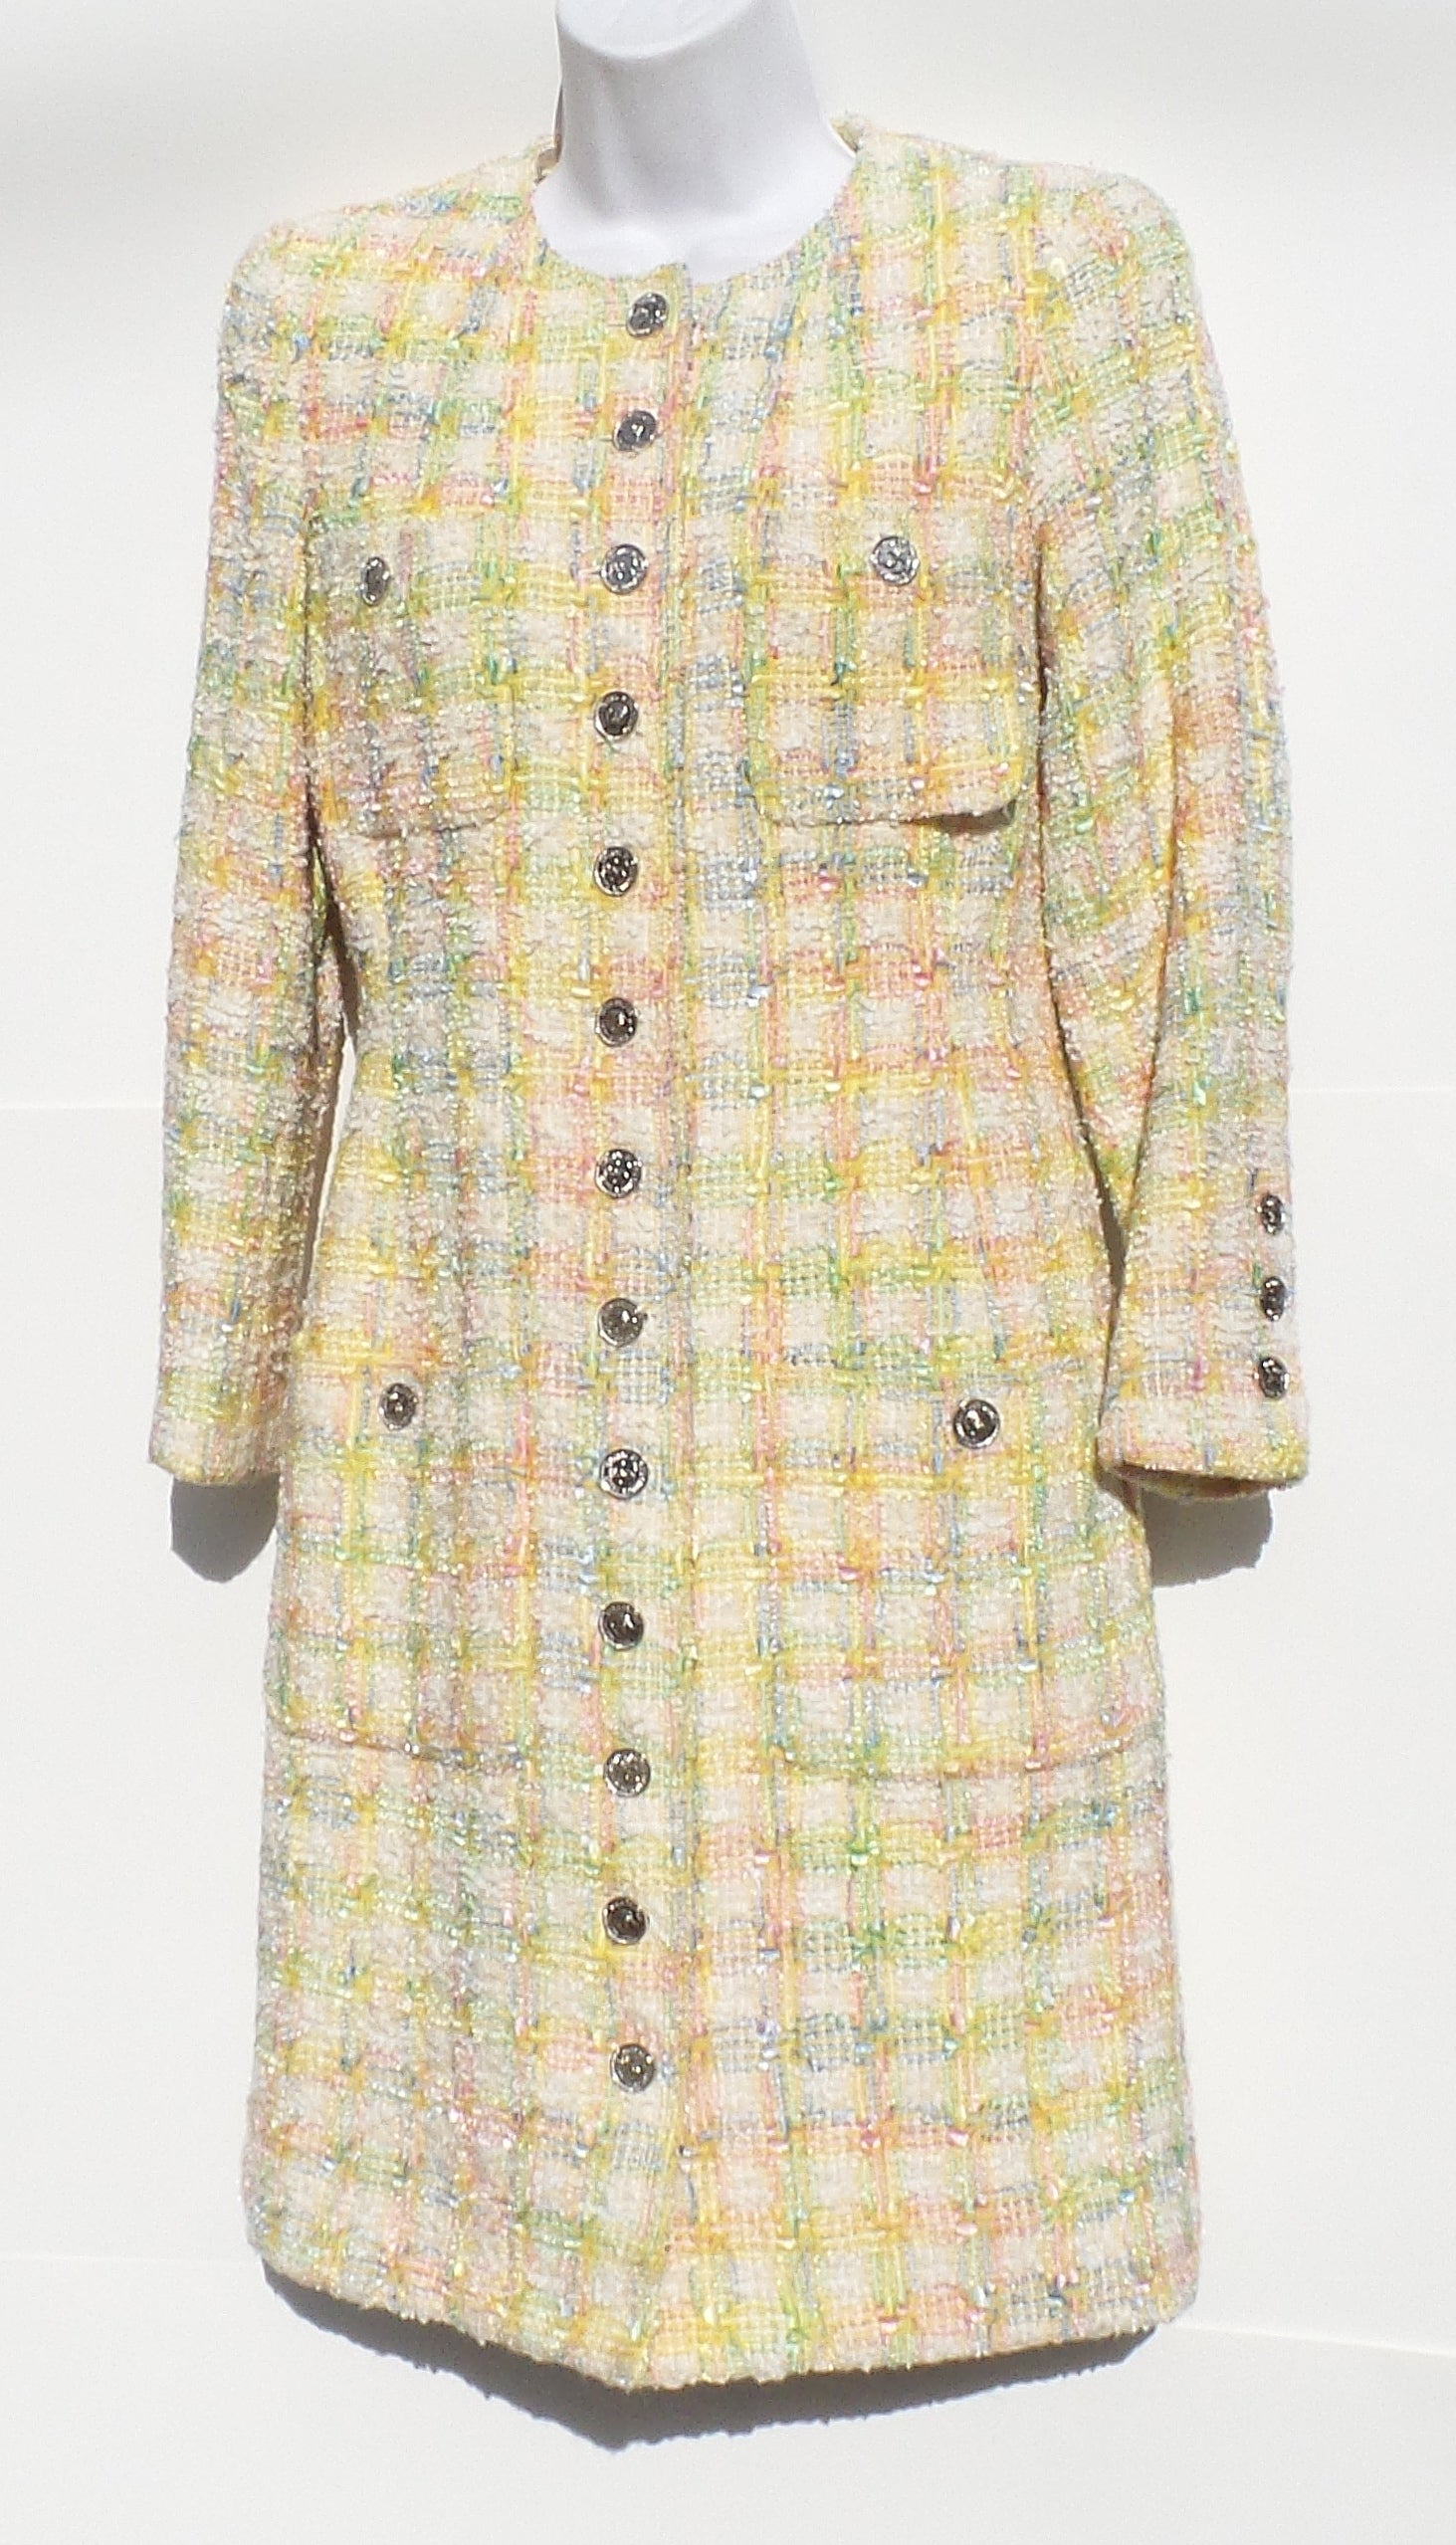 'Sold' CHANEL 96P Yellow Pink Purple Tweed Silver CC Button Coat Jacket 34